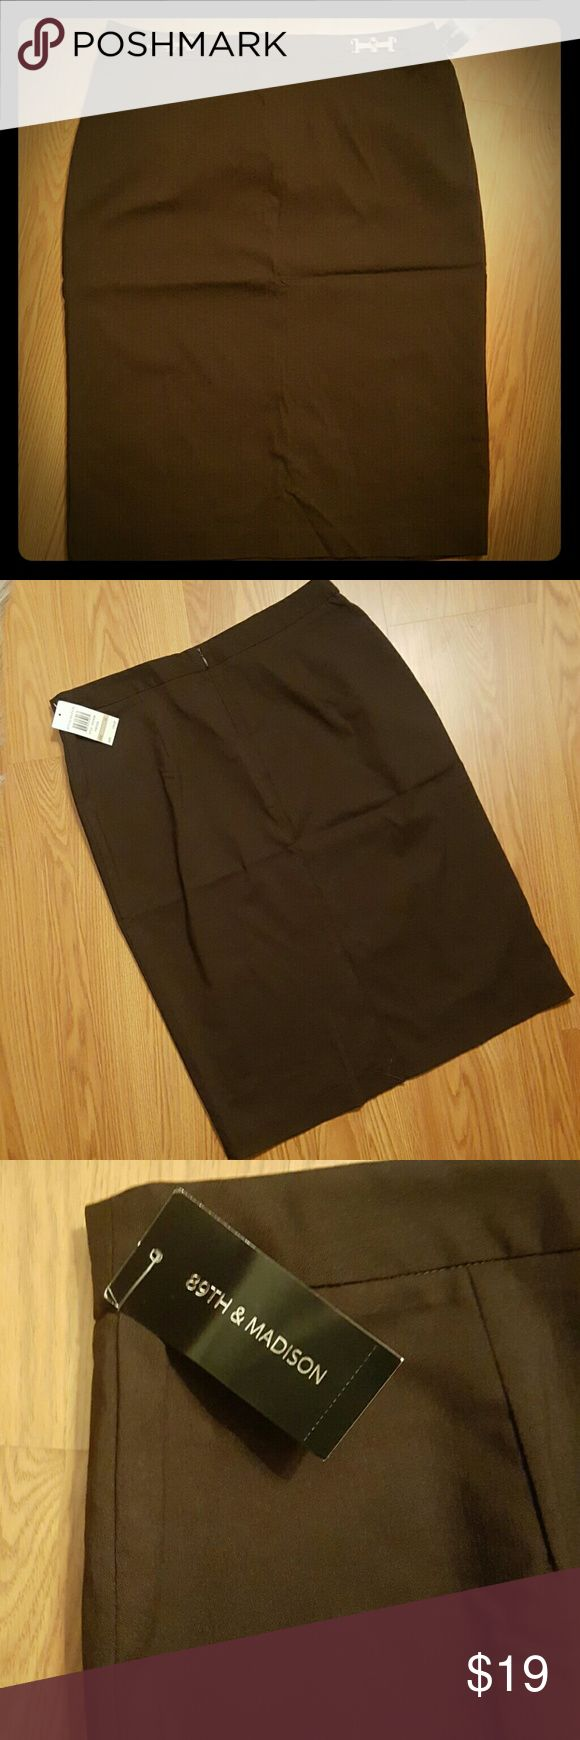 89th & Madison Pencil Skirt 89th & Madison Brown pencil w/gold tone hardware in front; rear zip closure. 74% rayon, 22% nylon, 4% spandex.  A wardrobe staple. 89th & Madison Skirts Pencil